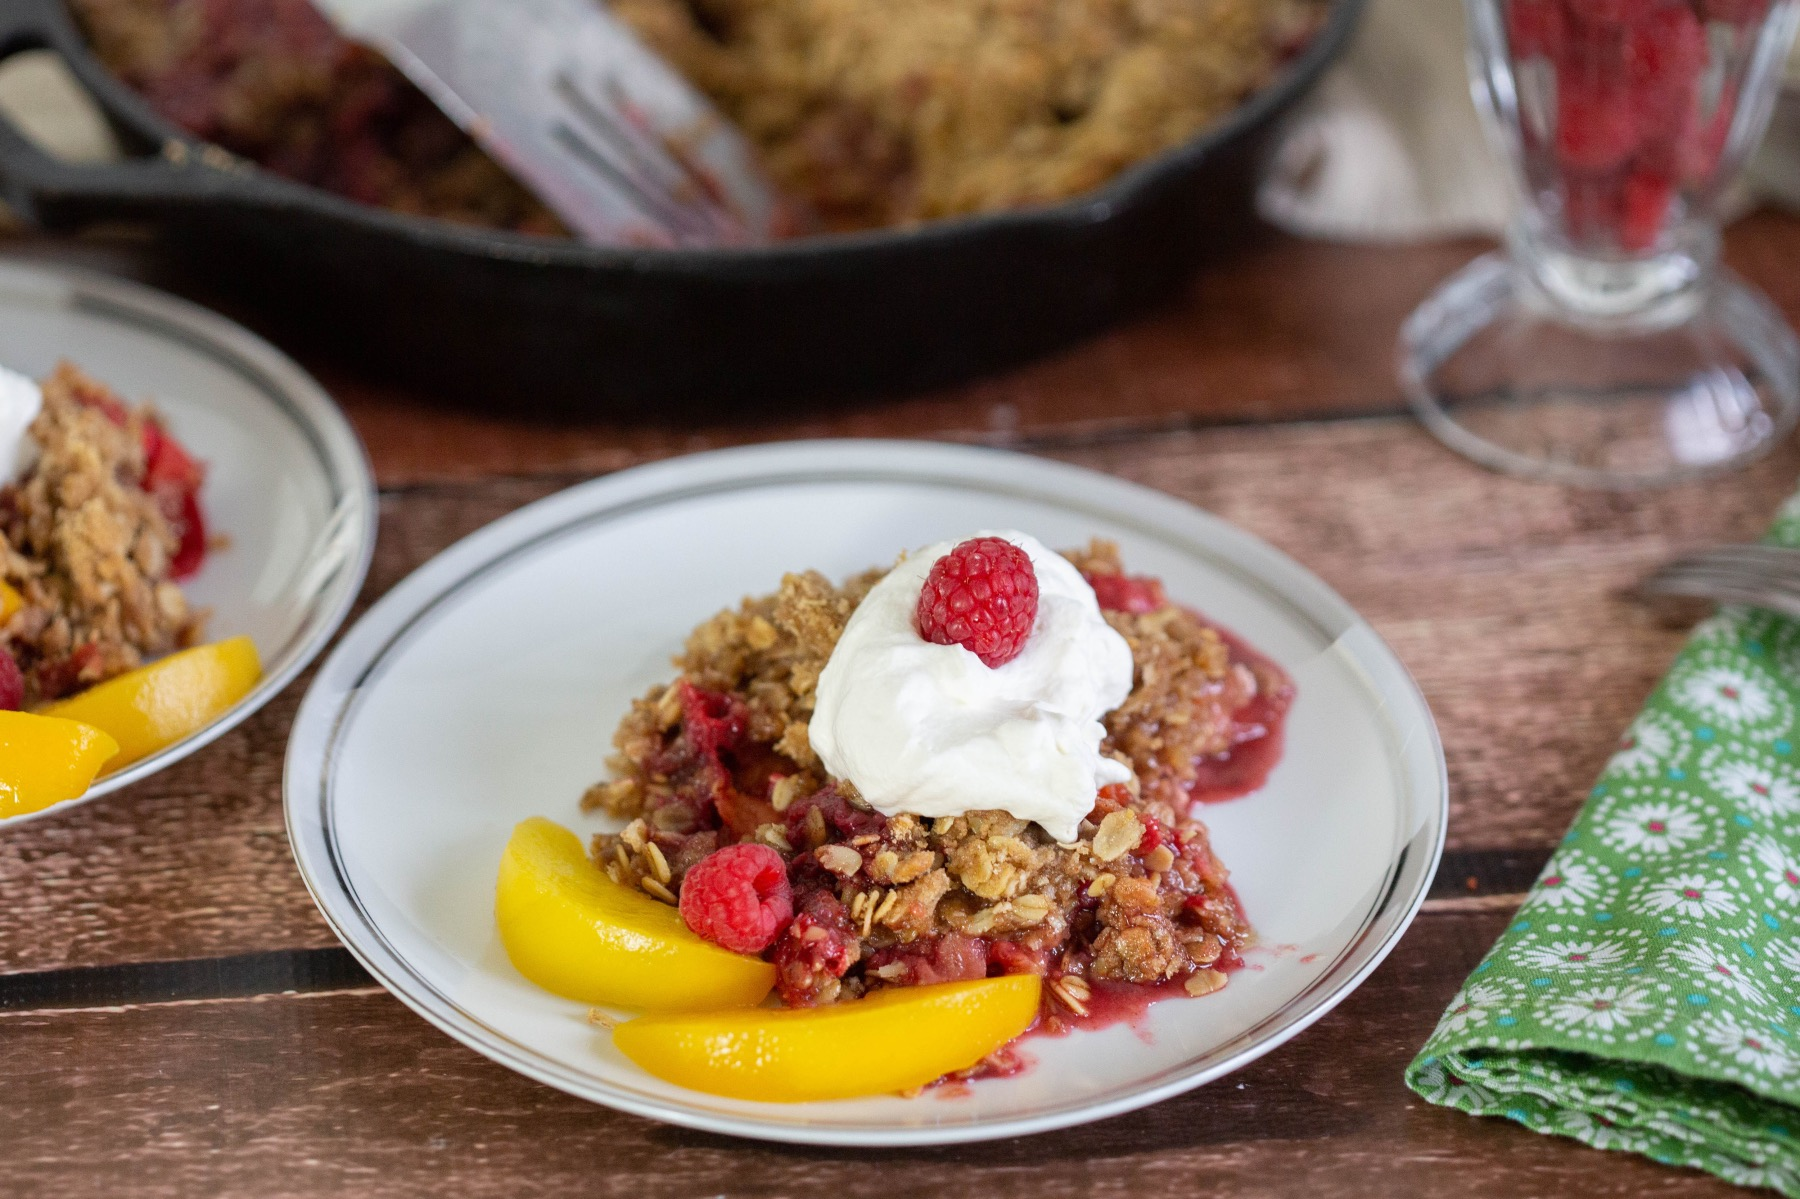 close up of the raspberry and peach crumble